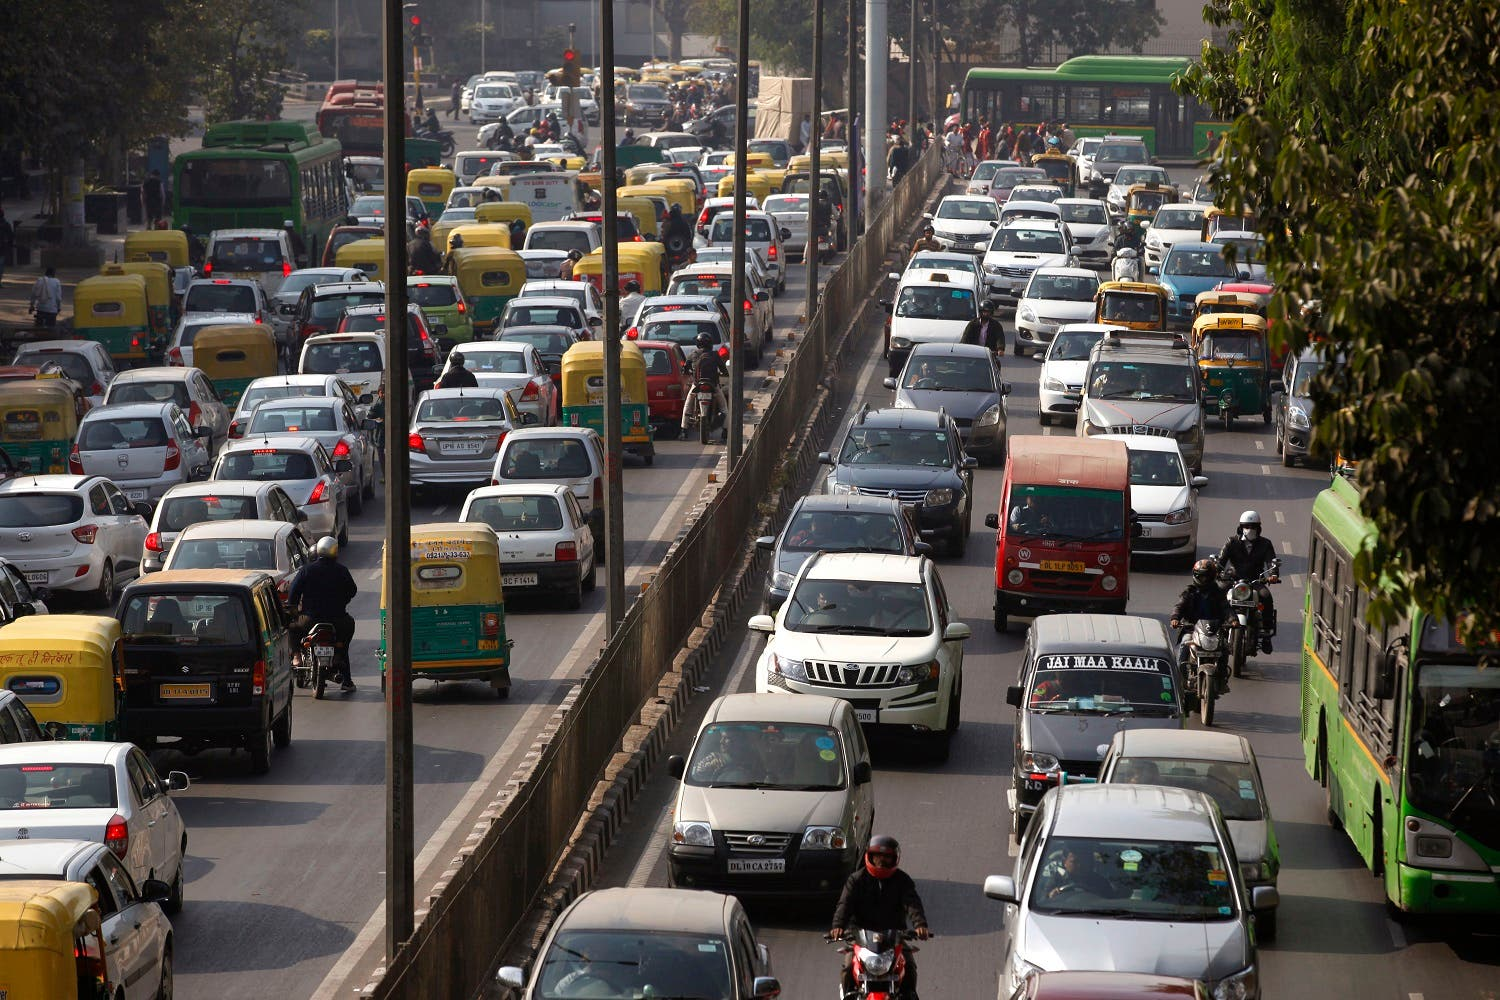 Six Indian cities, including capital New Delhi, are among the 15 most-polluted cities in the world ranked by WHO. (AP)